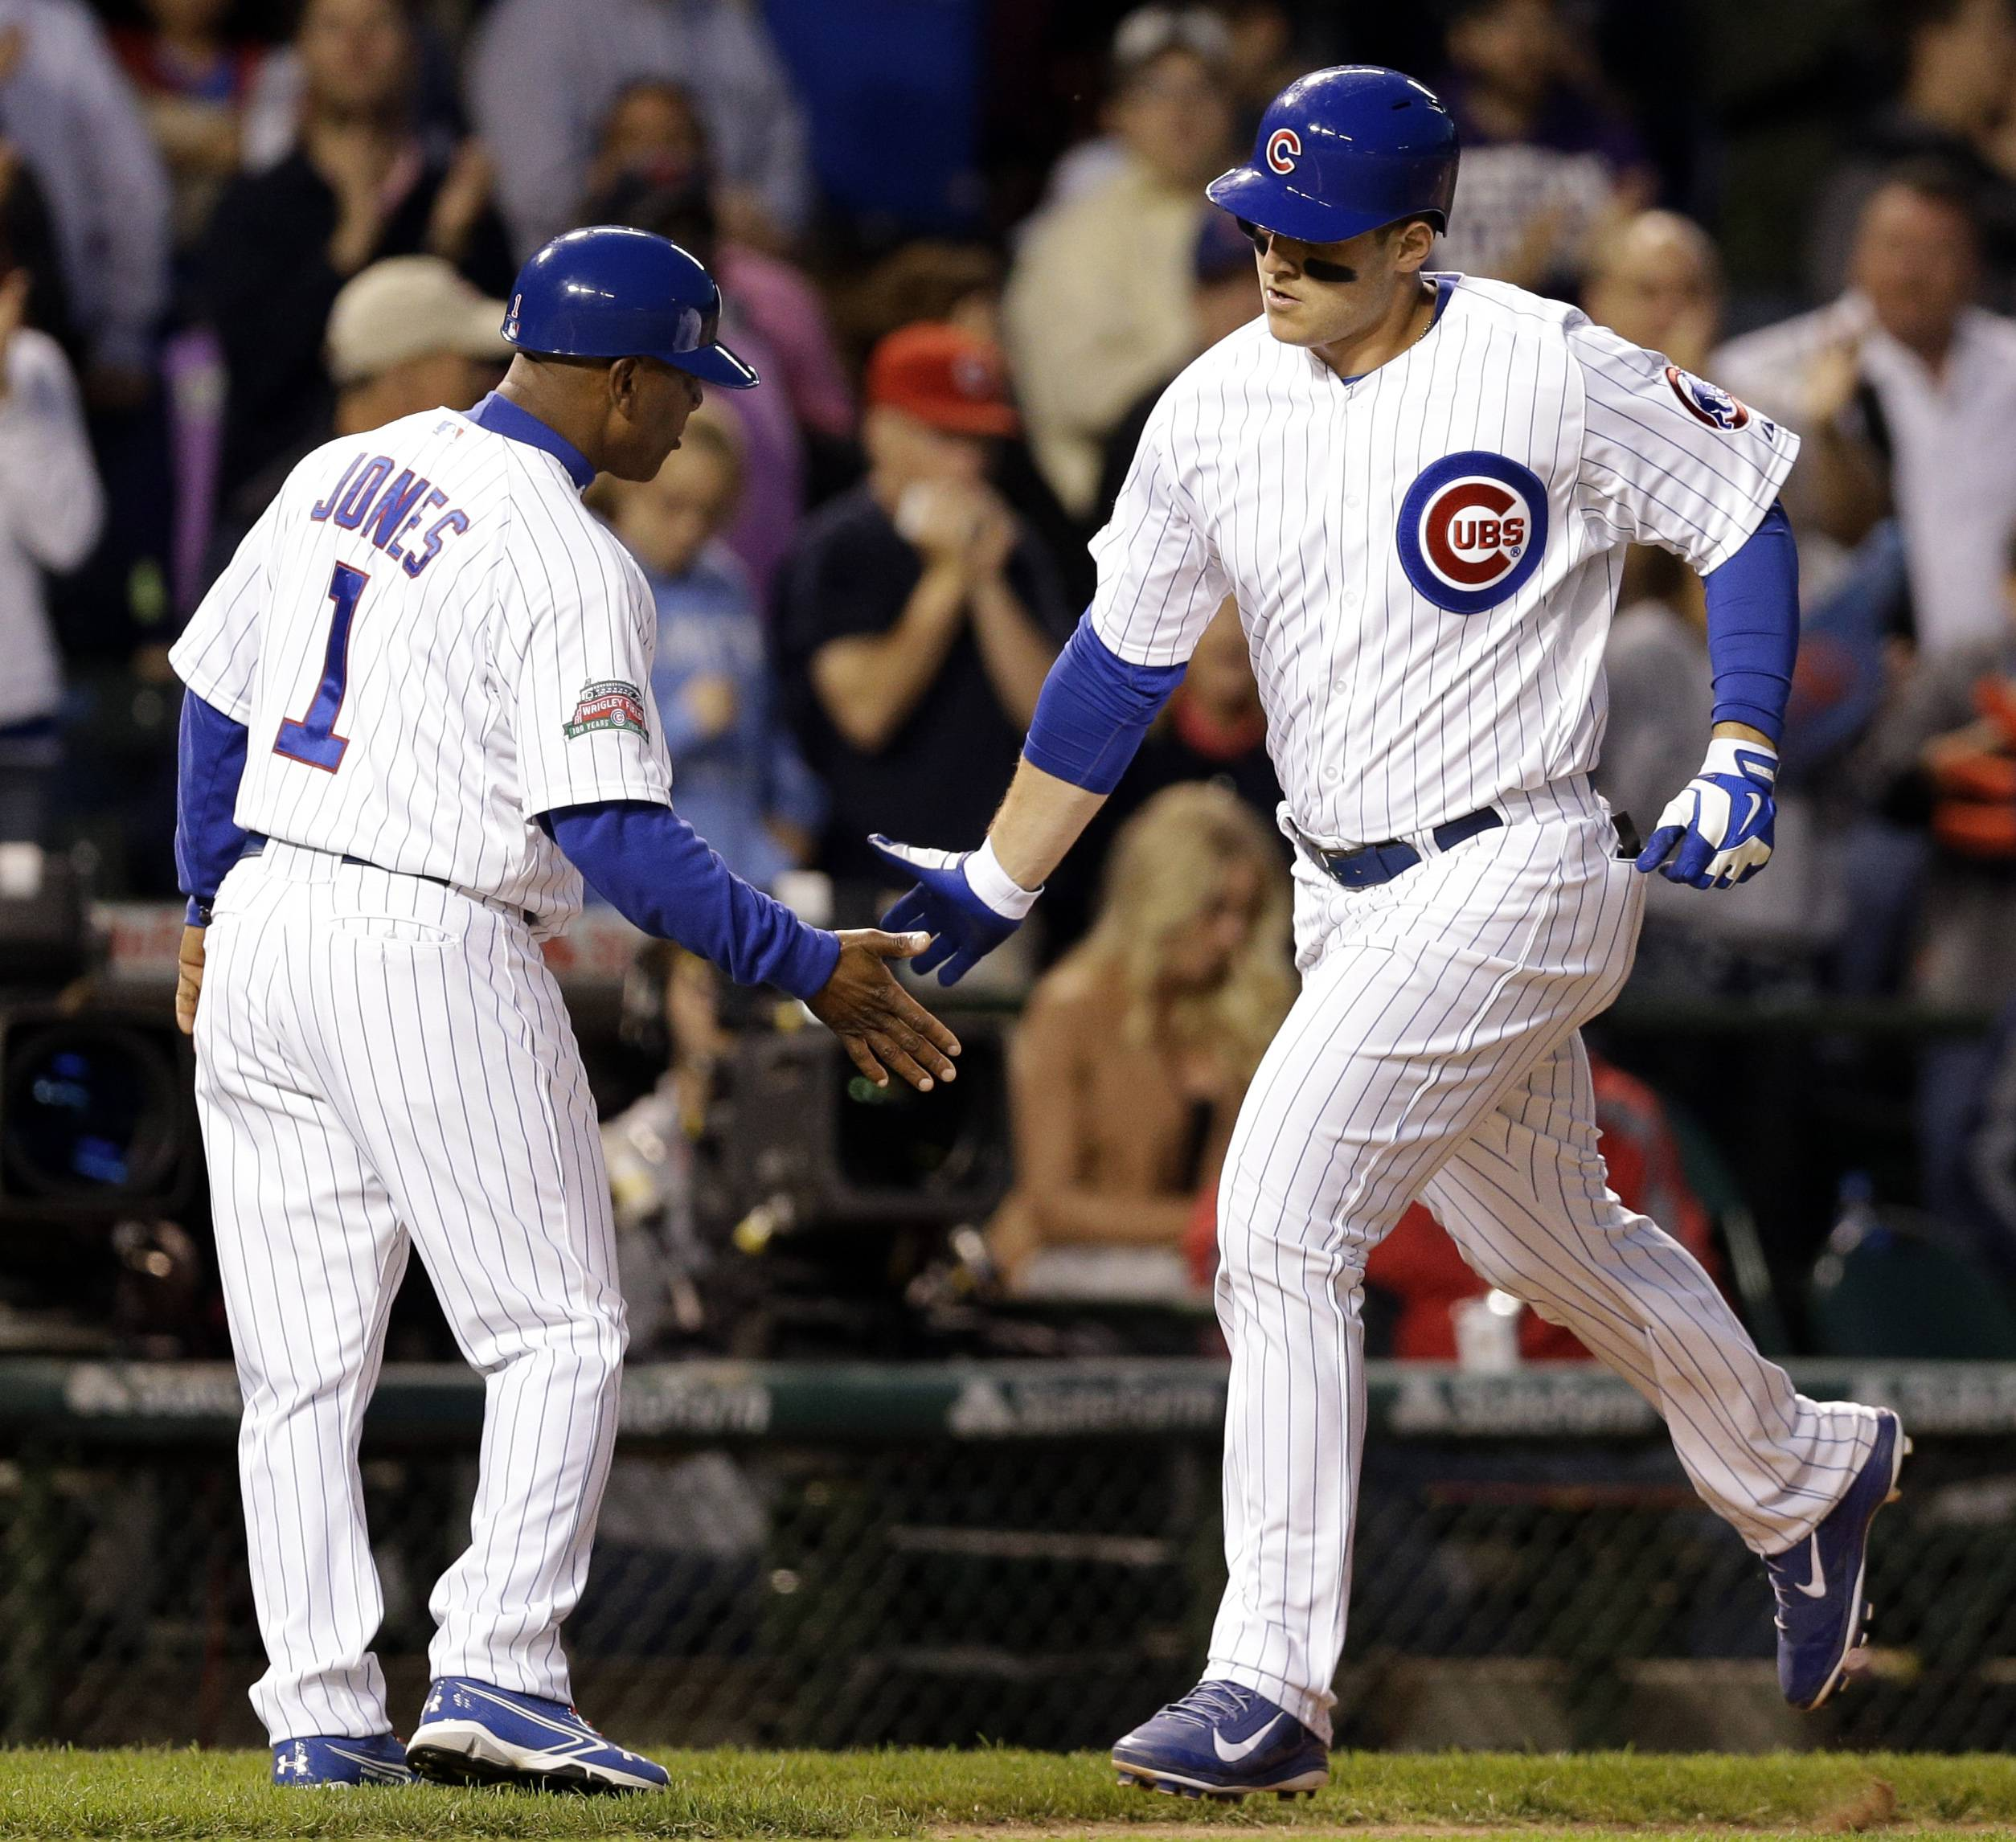 Chicago Cubs' Anthony Rizzo, right, celebrates with third base coach Gary Jones after hitting a solo home run during the seventh inning of a baseball game against the New York Mets in Chicago, Thursday, June 5, 2014.